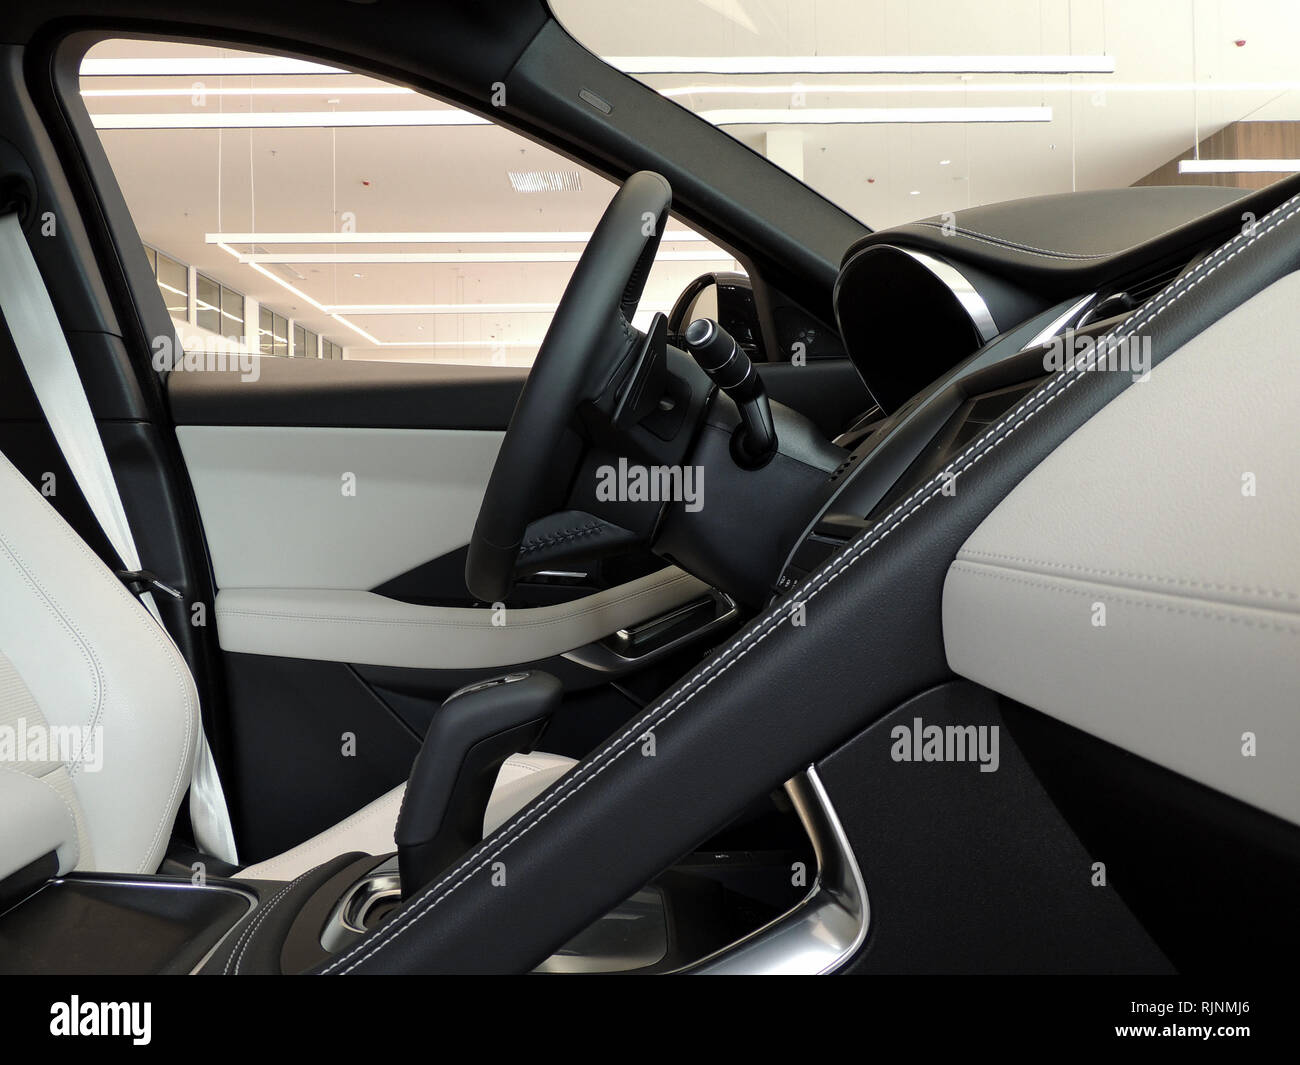 Combination of black and white leather upholstery of premium car interior - Stock Image